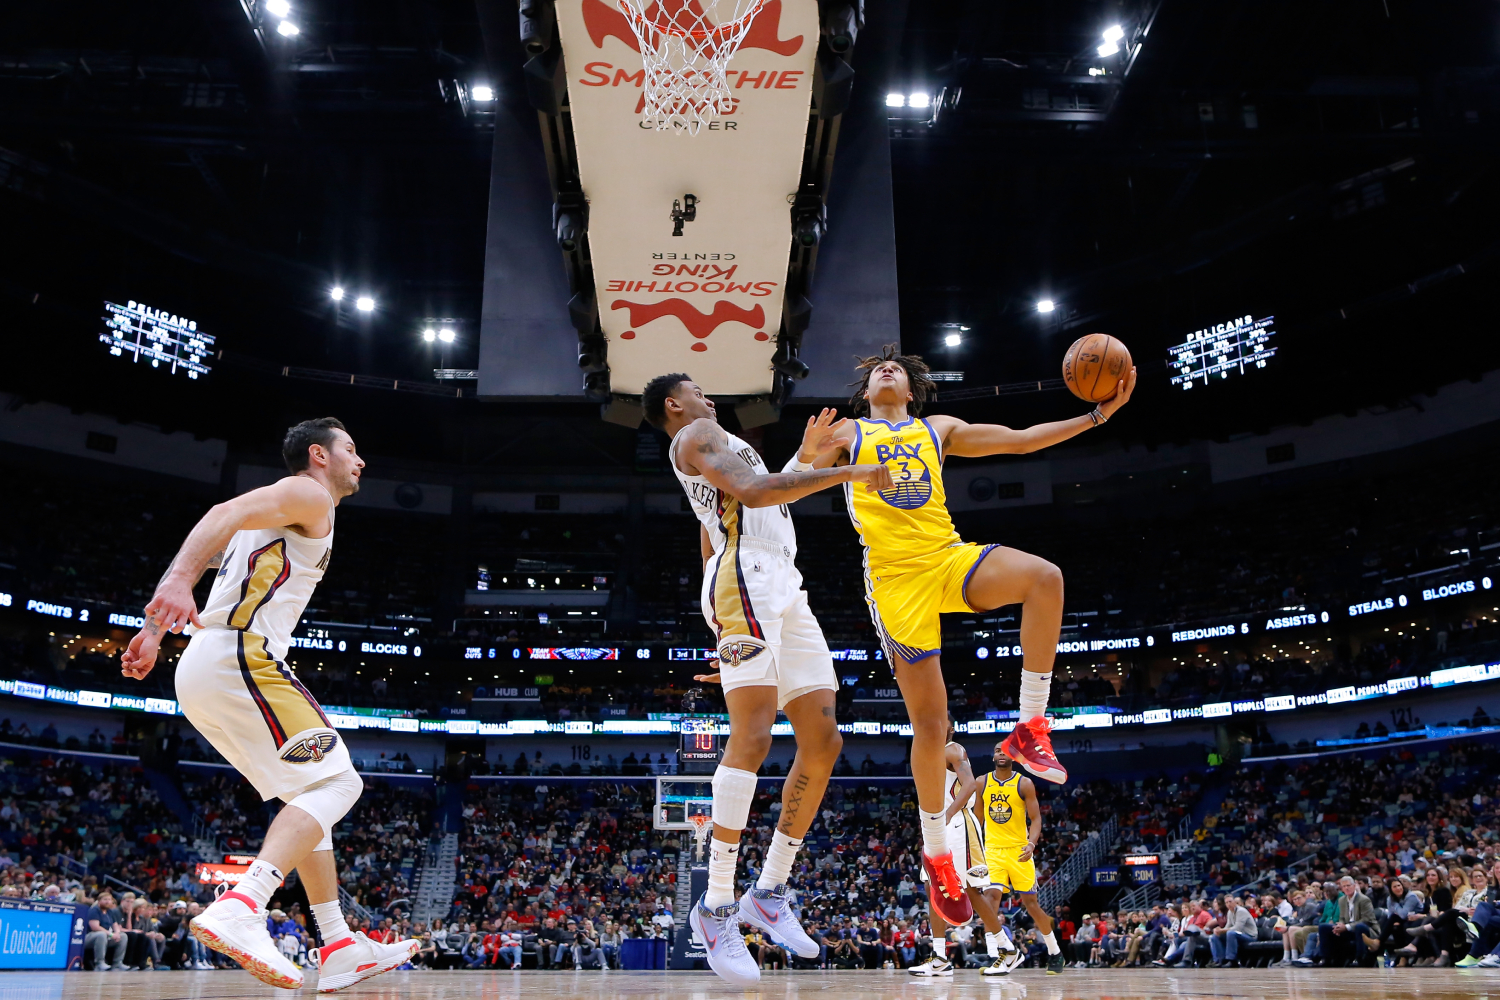 The Golden State Warriors have some talented, big-named players. However, their $2.06 million man, Jordan Poole, could have a breakout year.